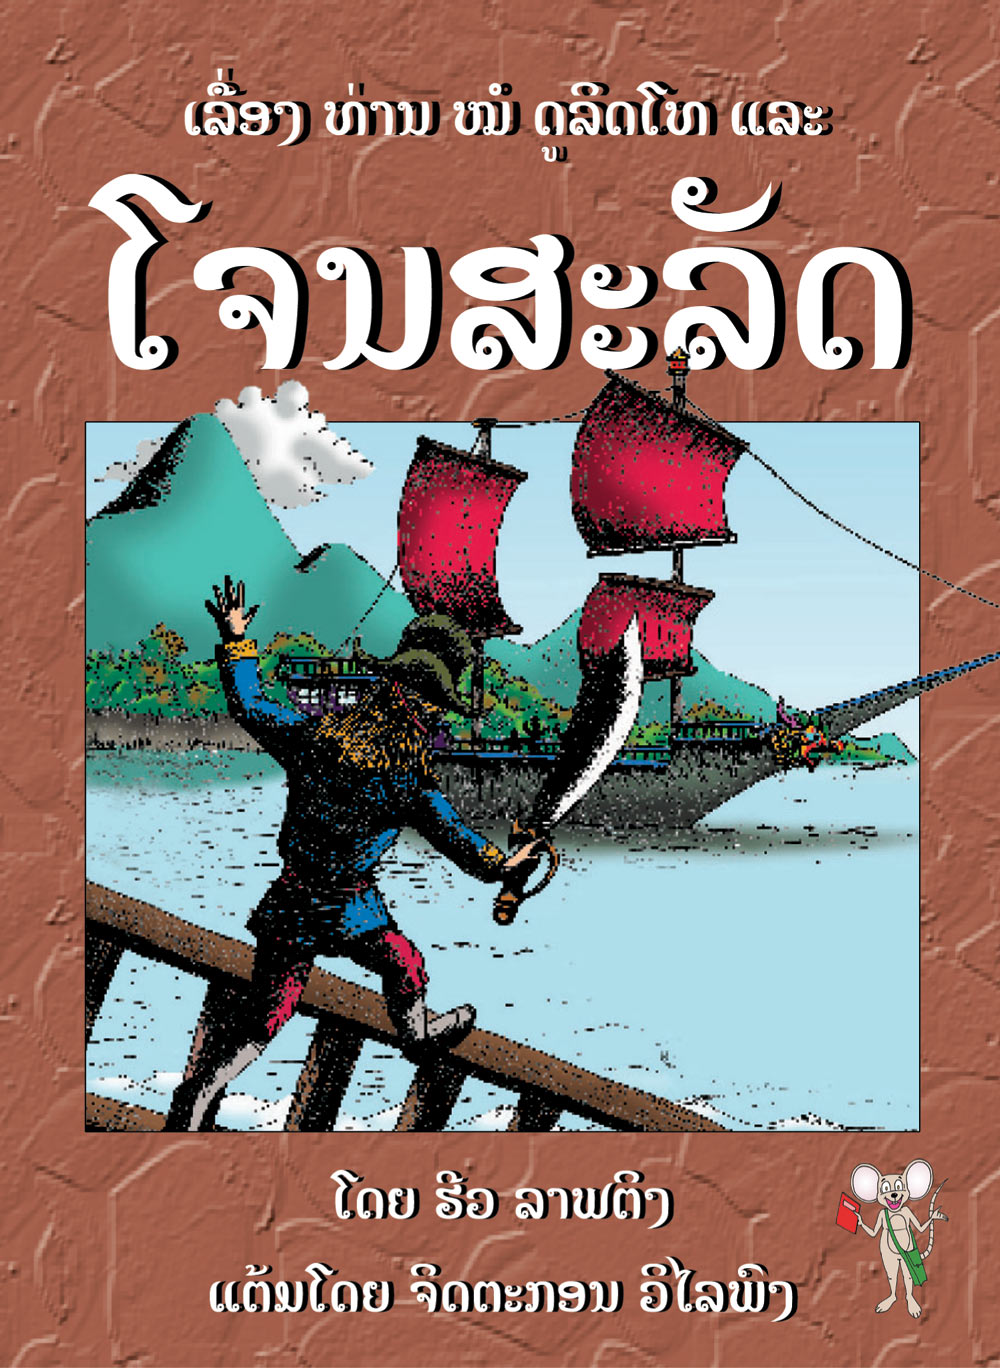 Dr. Dolittle and the Pirates large book cover, published in Lao language